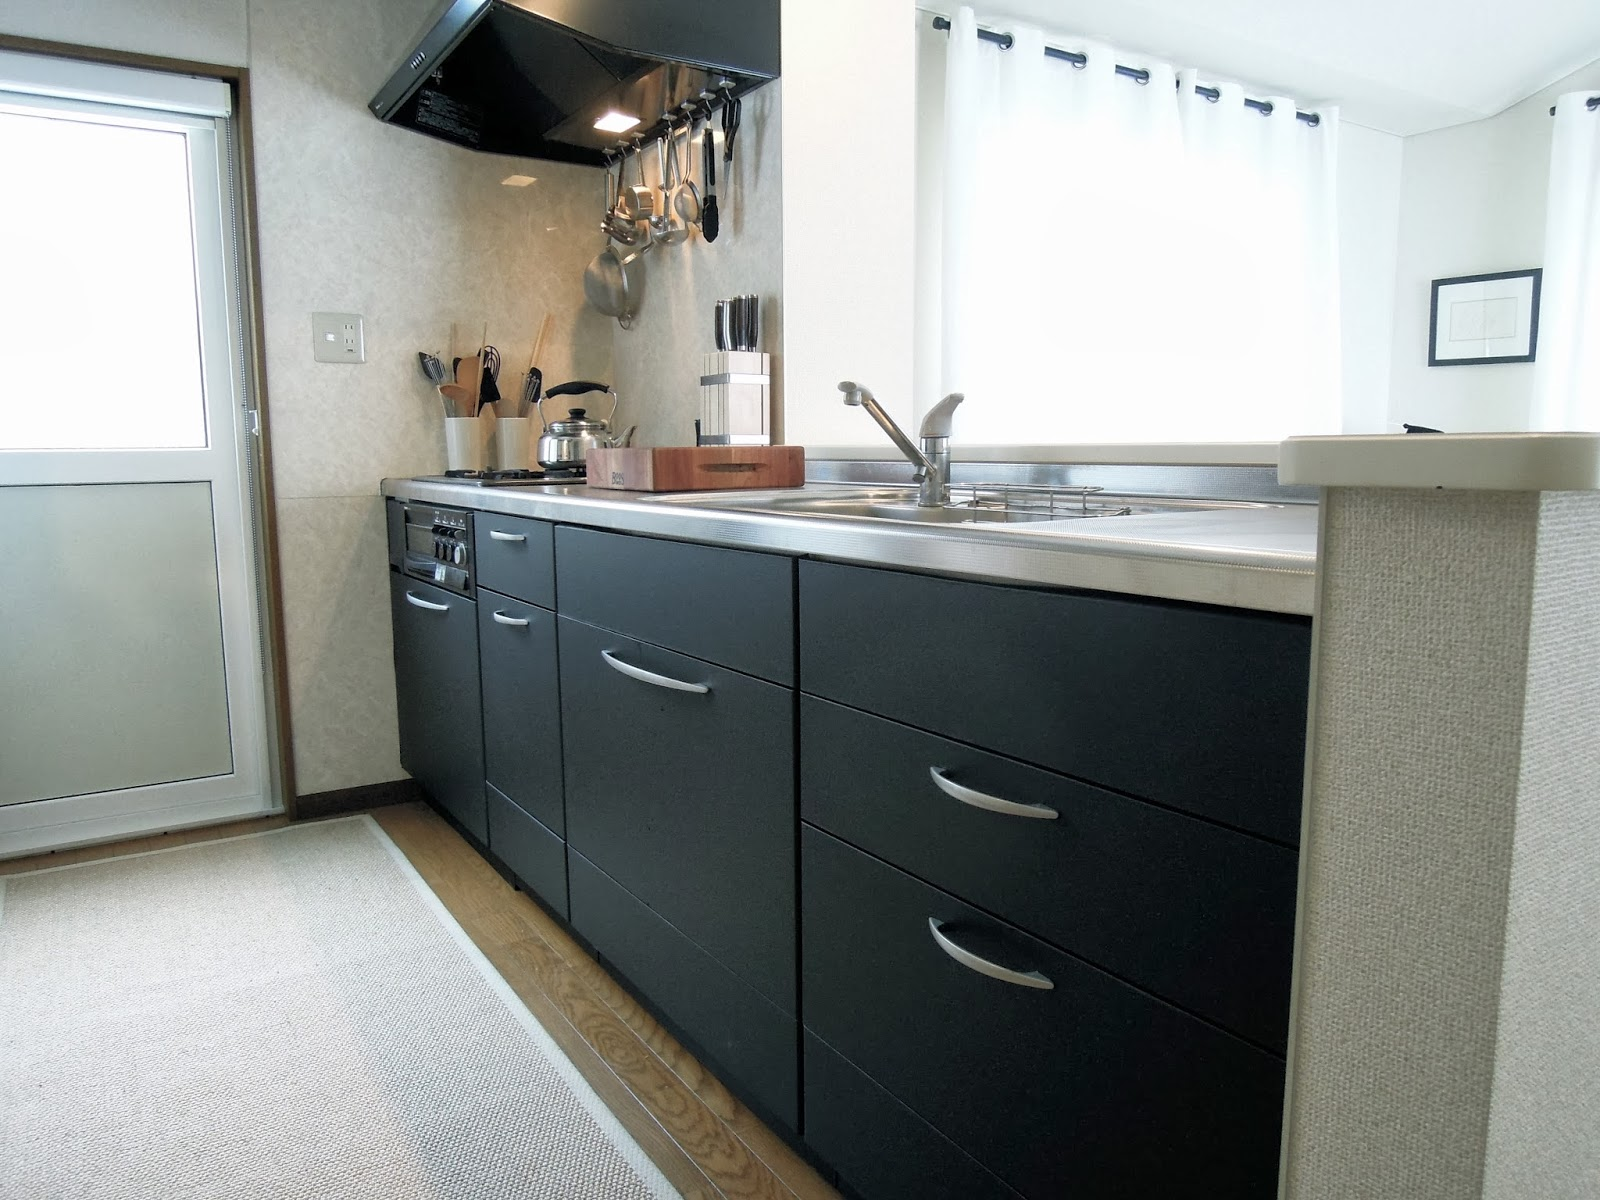 designpunk: Rad Black Cabinets in My Japanese Kitchen on mint green kitchen cabinets, white kitchen cabinets, sage green kitchen cabinets, two tone kitchen cabinets, rta kitchen cabinets, cream kitchen cabinets, light kitchen cabinets, color kitchen cabinets, blue kitchen cabinets, yellow painted kitchen cabinets, green painted kitchen cabinets, tan kitchen cabinets, neutral kitchen cabinets, brown kitchen cabinets, eggshell kitchen cabinets, charcoal gray kitchen cabinets, glazed kitchen cabinets, buttermilk kitchen cabinets, painting kitchen cabinets, espresso kitchen cabinets,